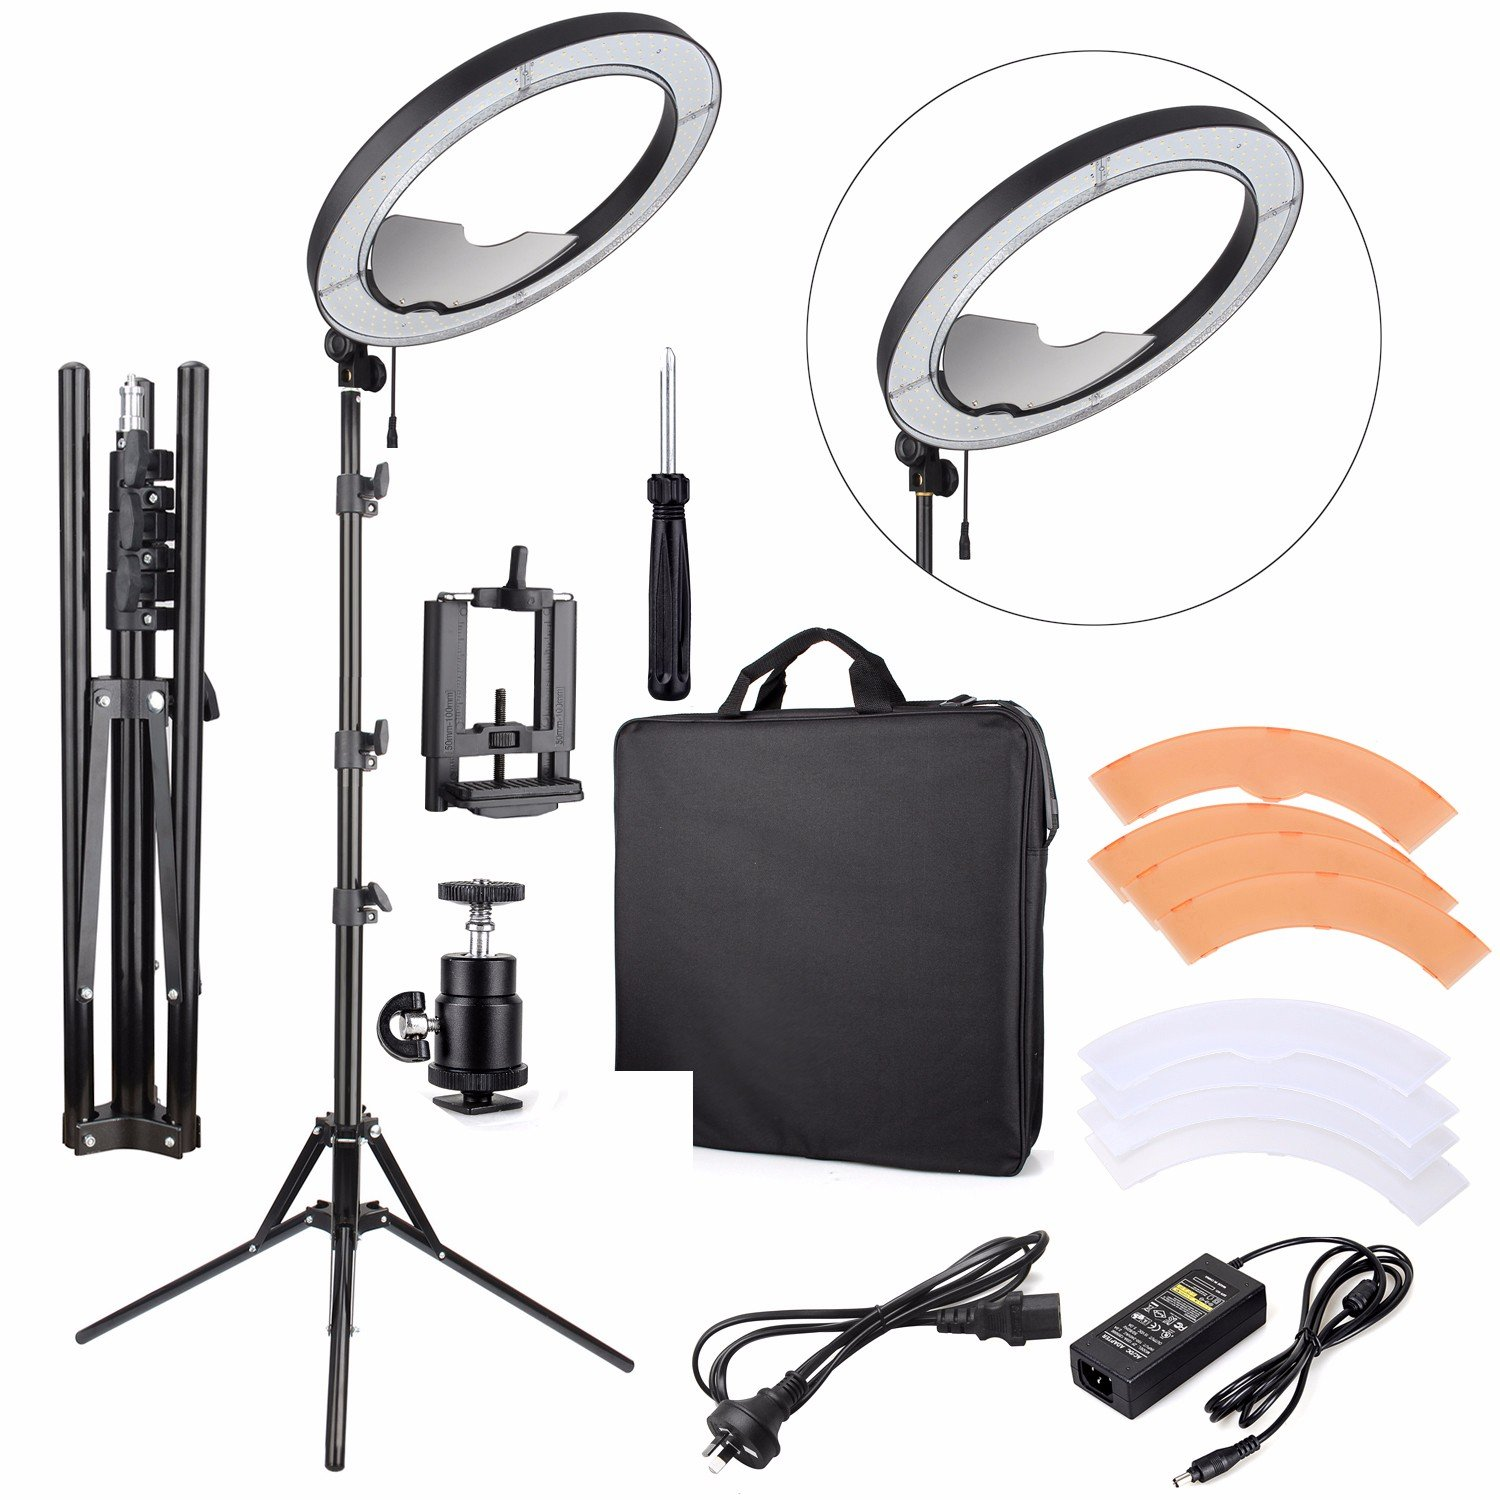 EACHSHOT ES240 Kit, Including Light, Stand, Mirror, Bag, Bracket} 18'' 5500K Dimmable LED Ring Light with 2 Color Diffuser for Makeup, Portrait Photography, Selfie, Camera Smartphone Youtube by EACHSHOT